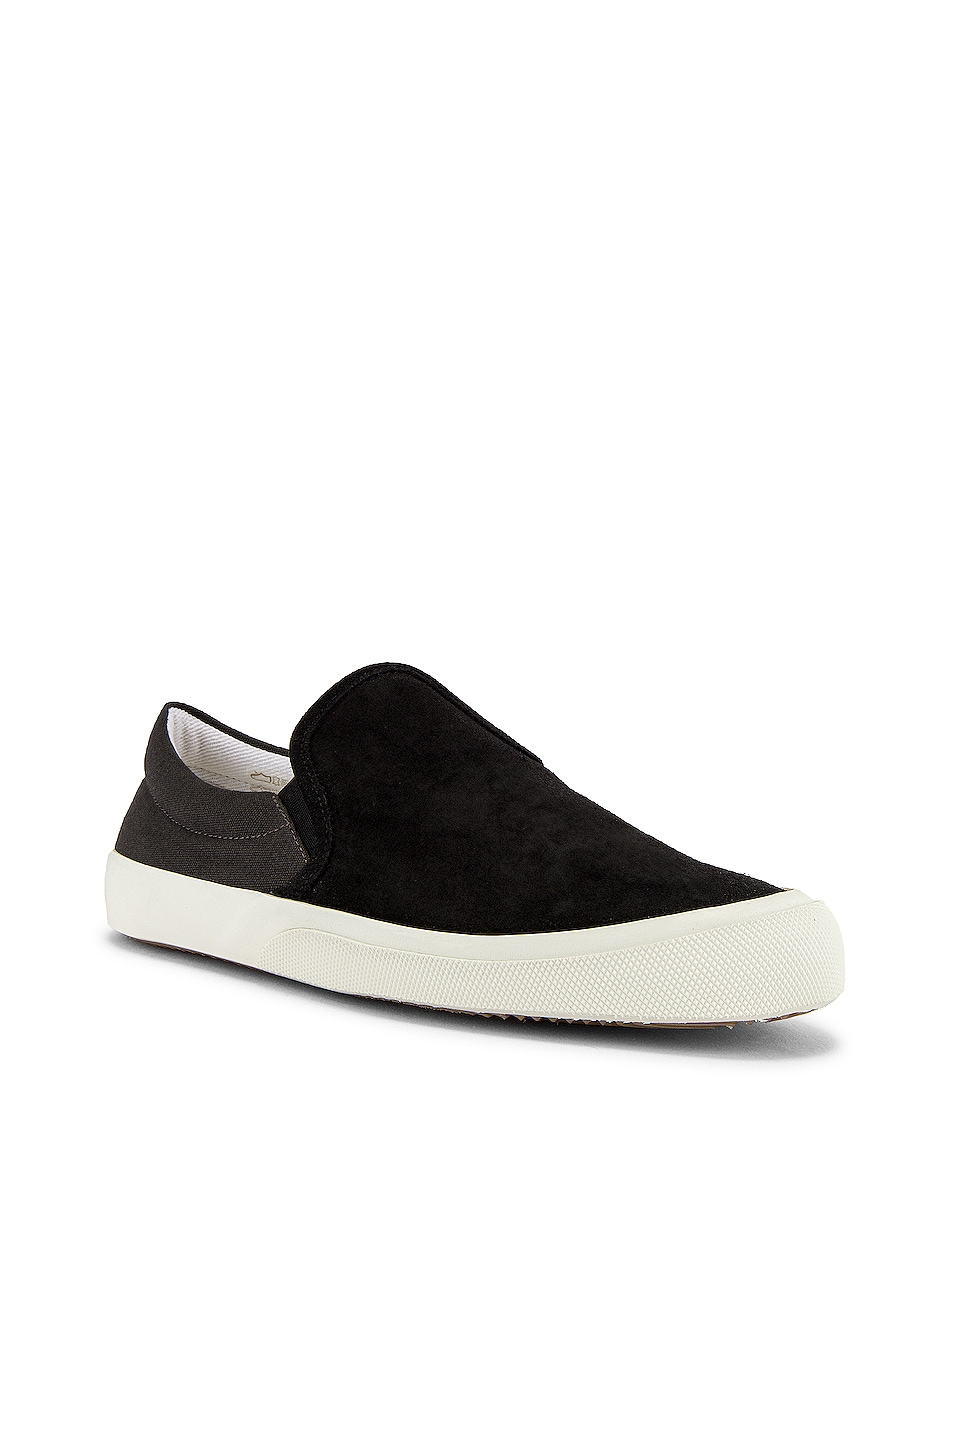 Image 1 of Maison Margiela Hurricane Slip On in Smoke 91 & Neroy